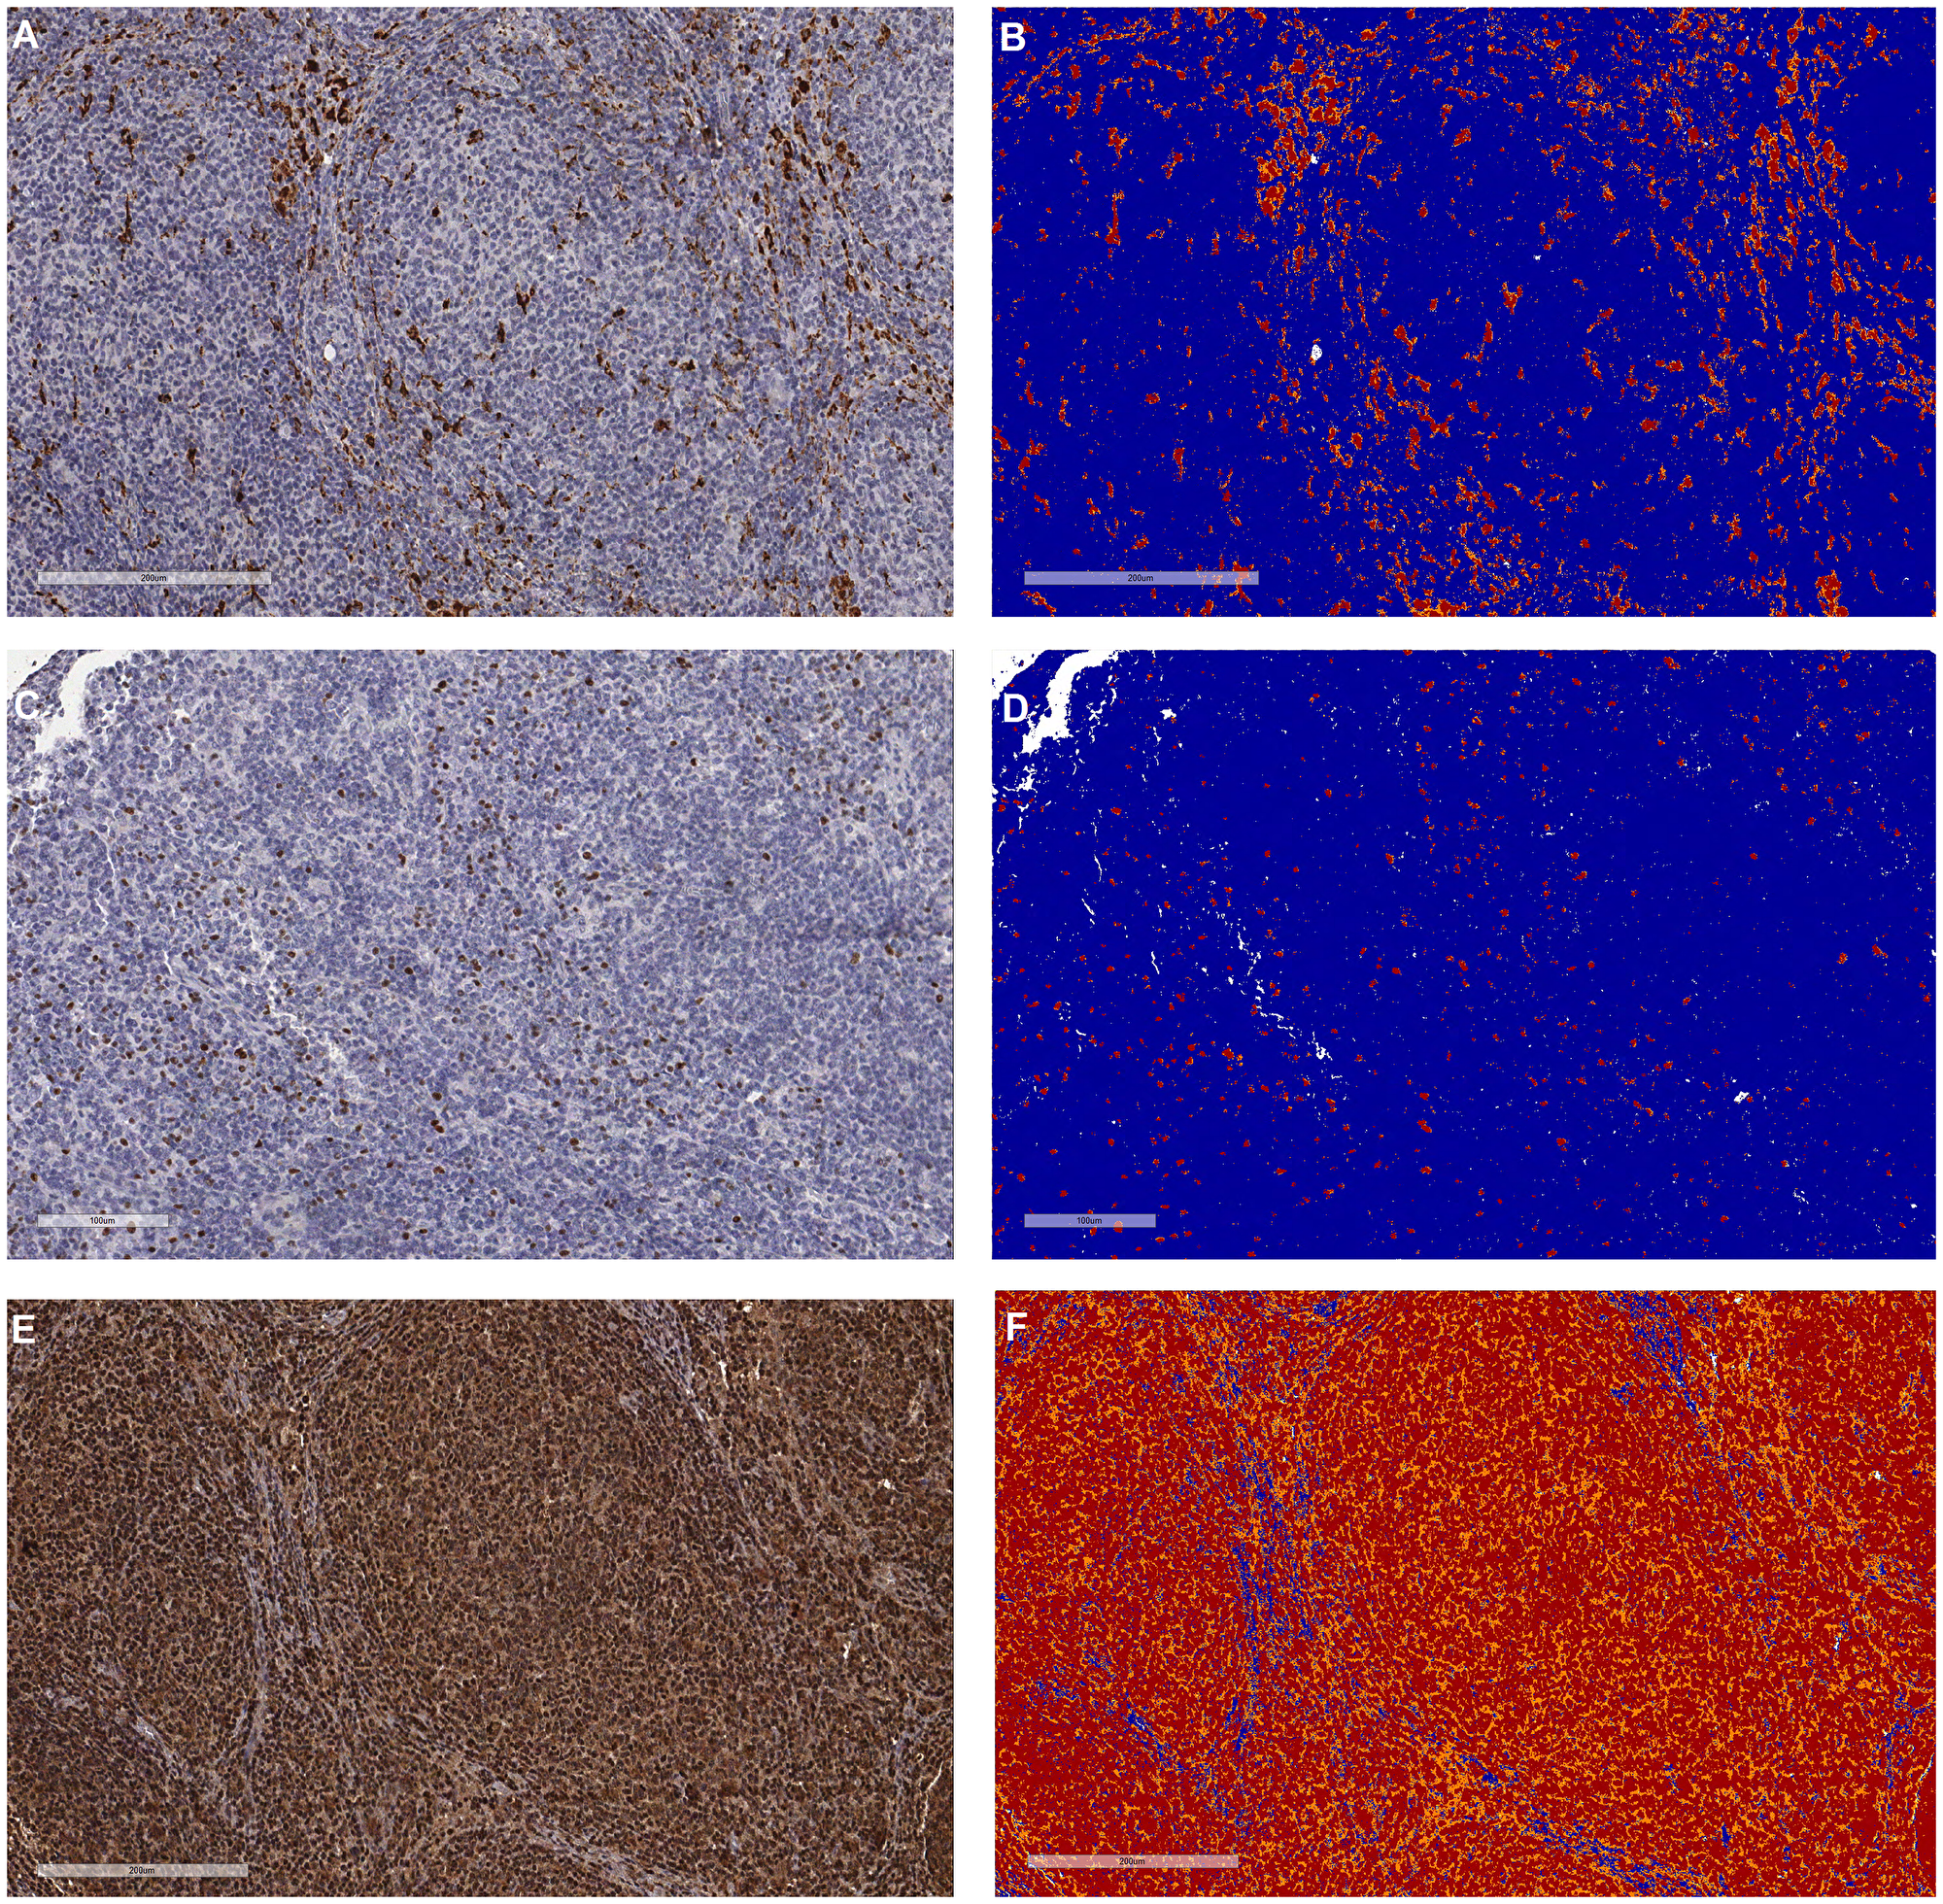 Representative pictures of the tumor microenvironment assessments by immunohistochemistry in follicular lymphoma.